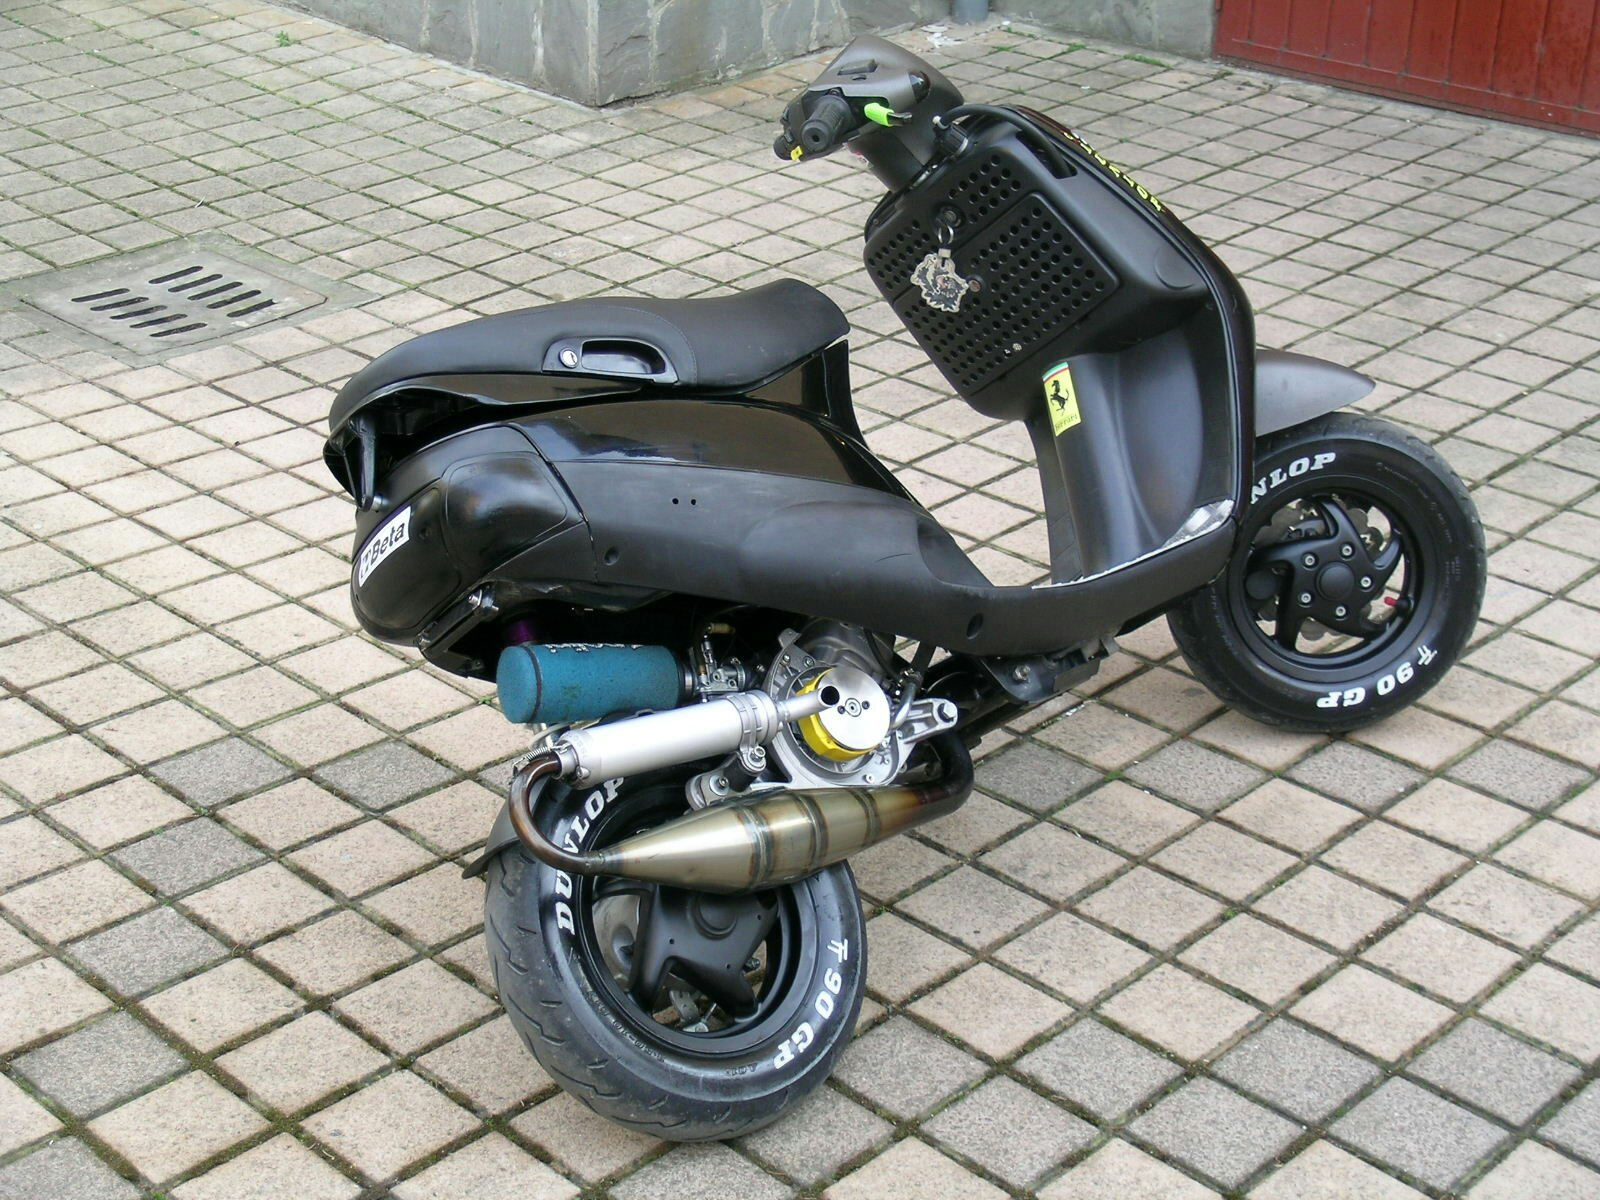 Piaggio Zip Sp Who Think This Is The Best Piaggio Ever Made